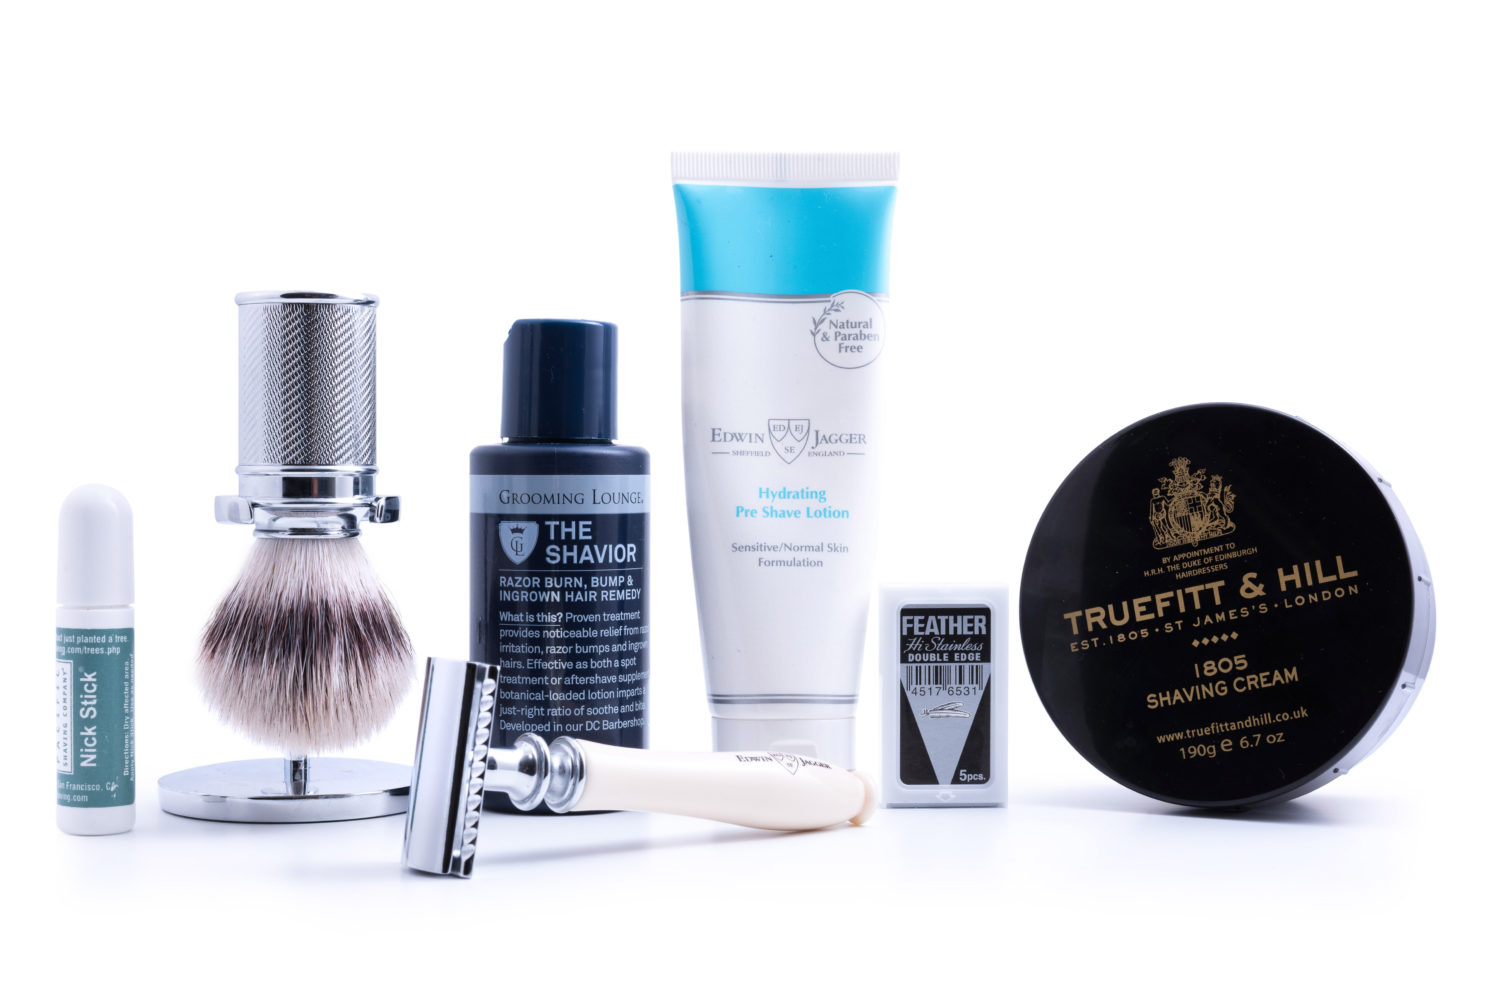 Good products will help you shave more efficiently with fewer nicks and cuts